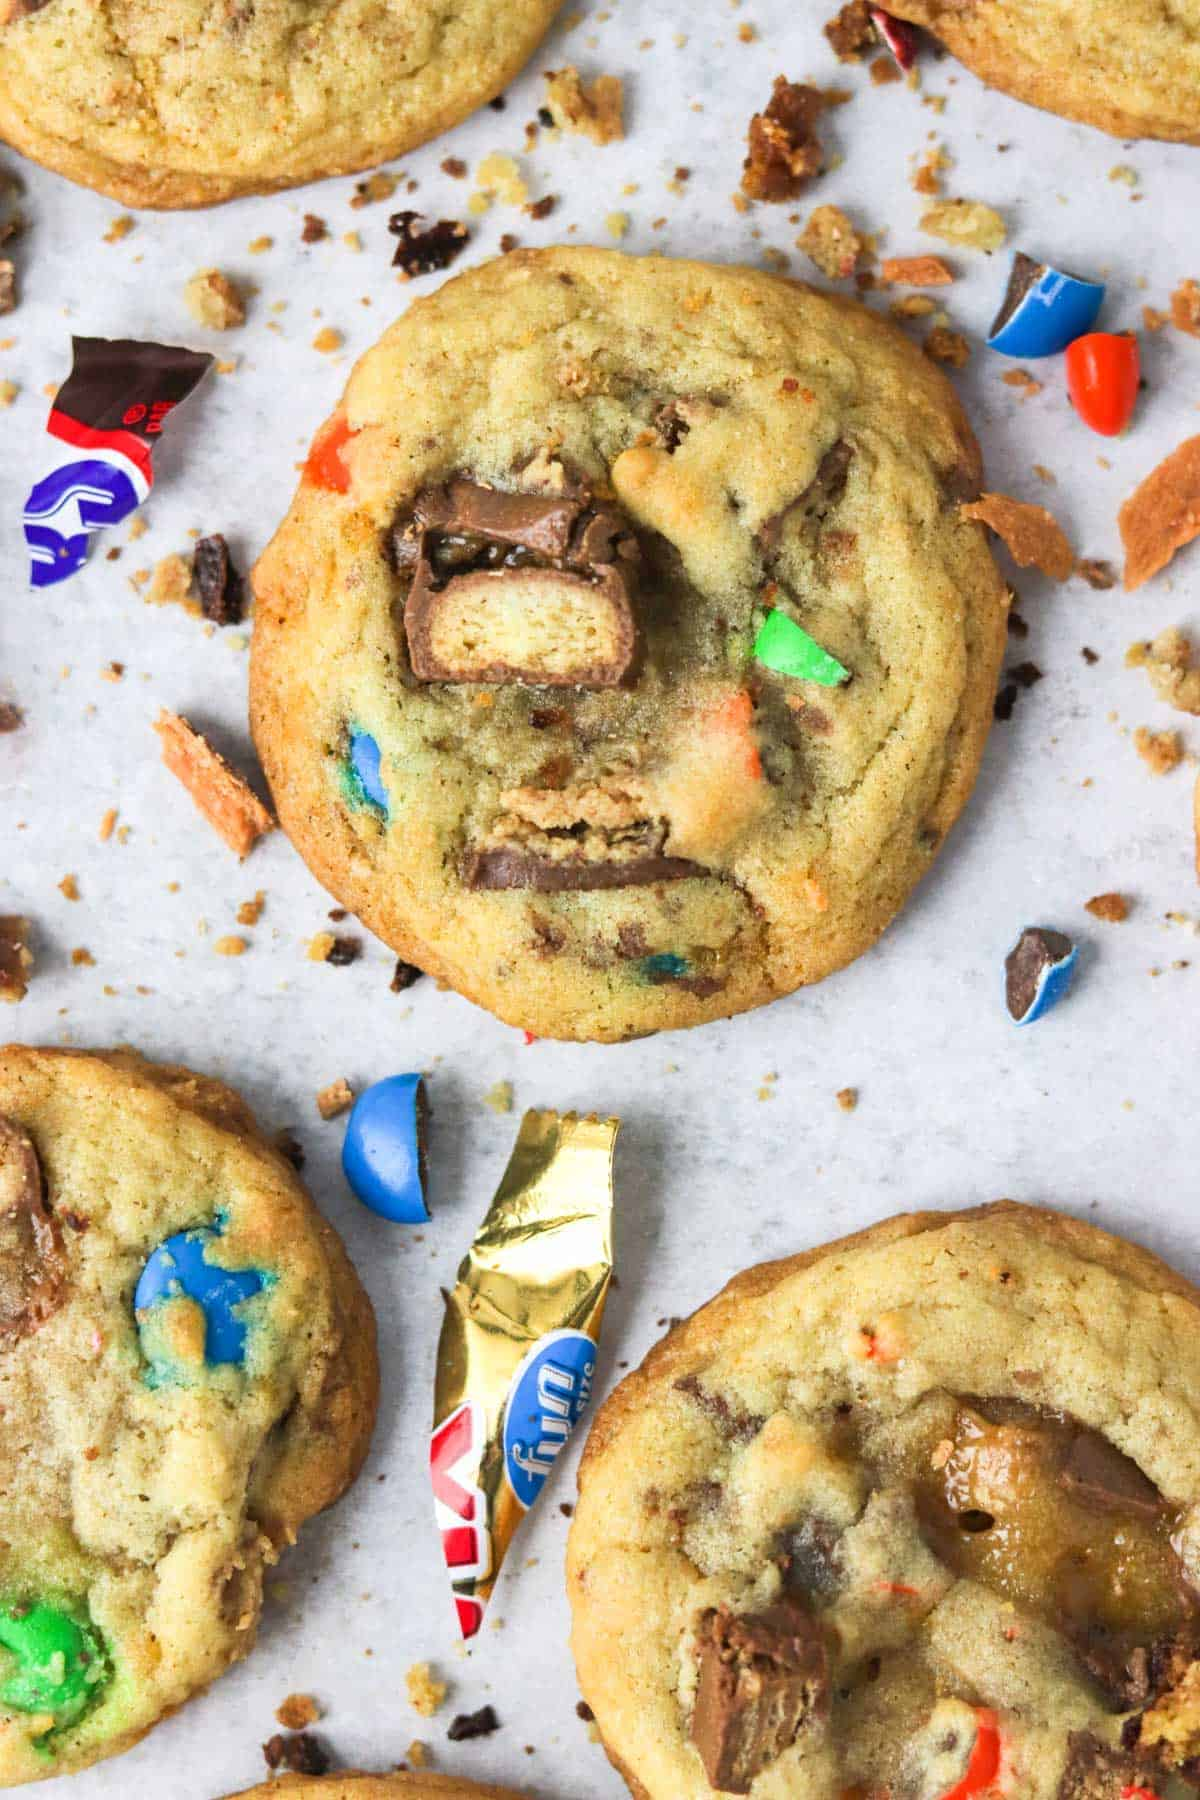 A close up of candy bar cookies with candy pieces around them.